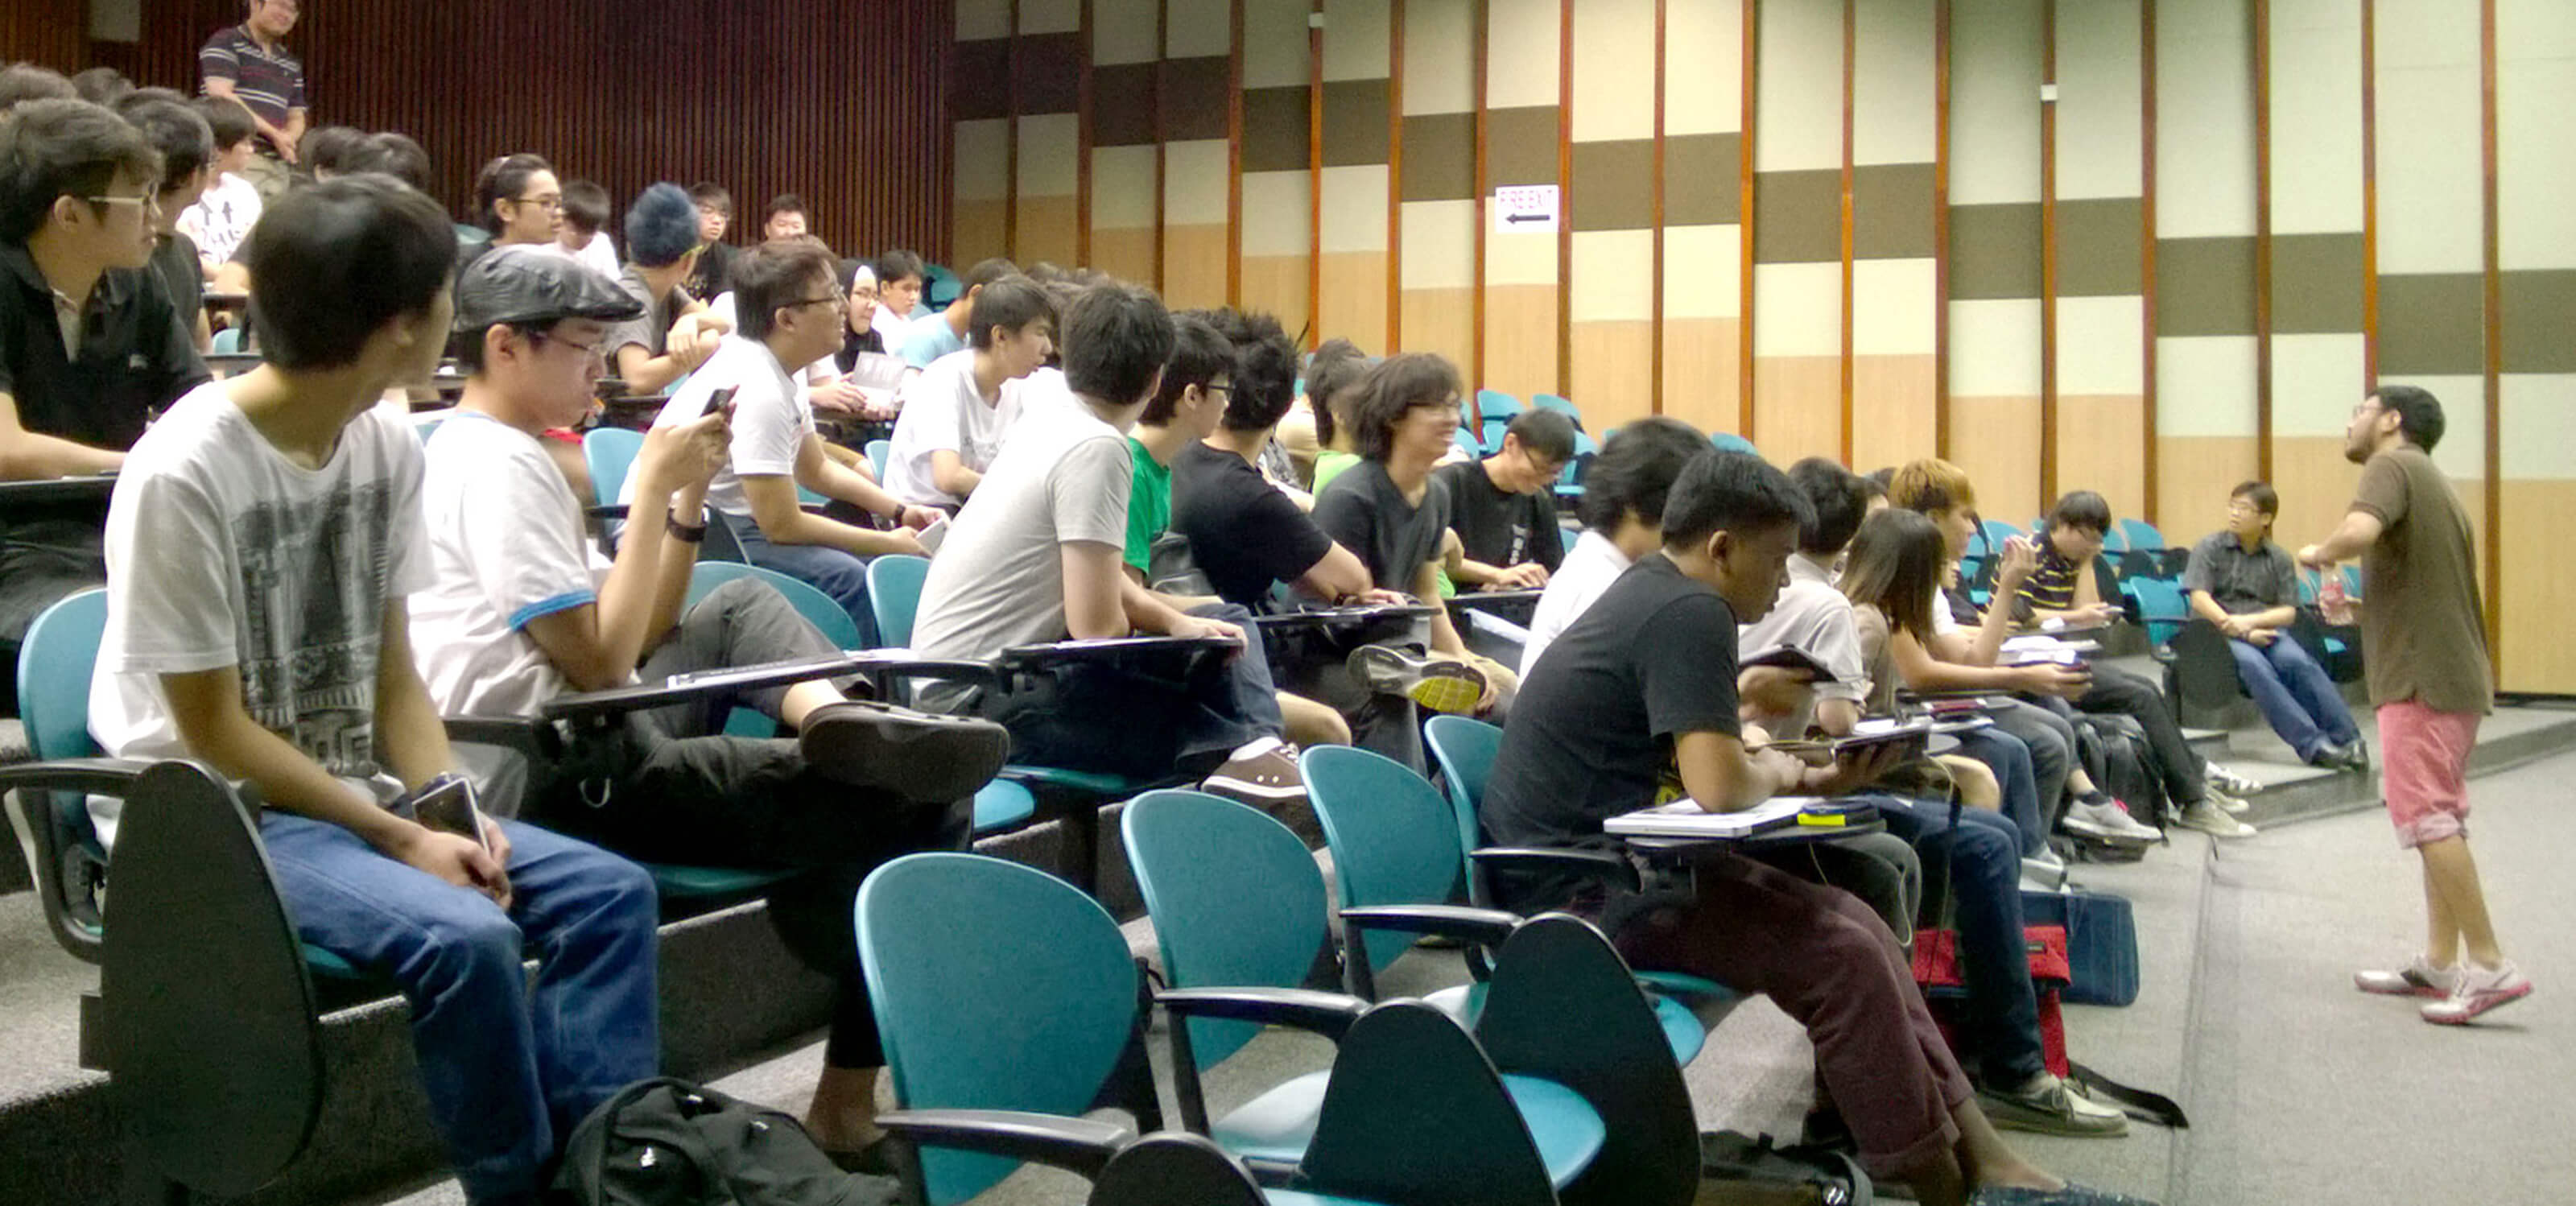 Dozens of polytechnic students attend a master class in an auditorium at DigiPen (Singapore)